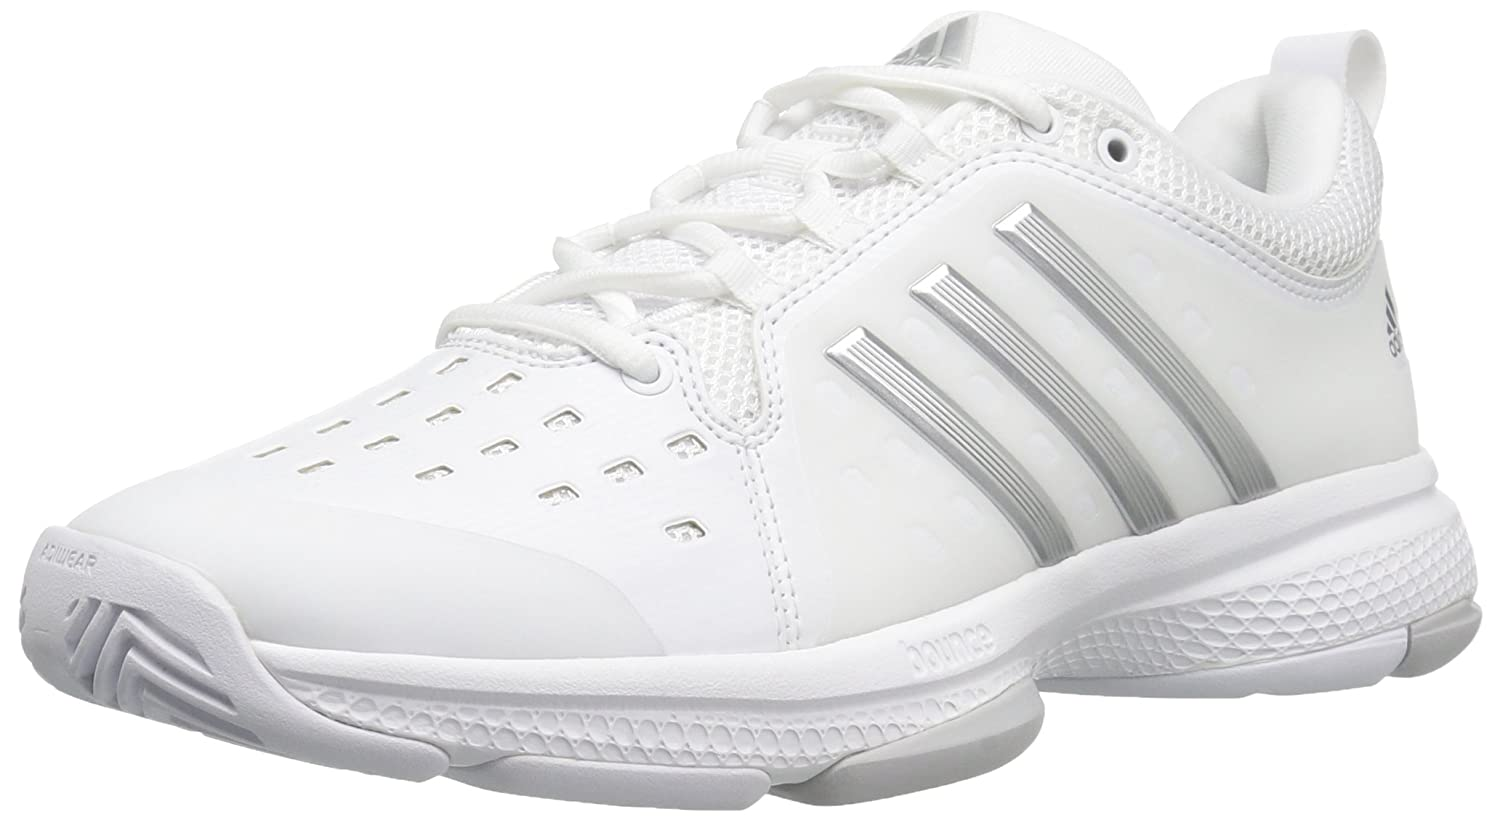 adidas Women's Barricade Classic Bounce Tennis Shoes B01H2DBHS6 9.5 B(M) US|White/Metallic Silver/Light Solid Grey Heather